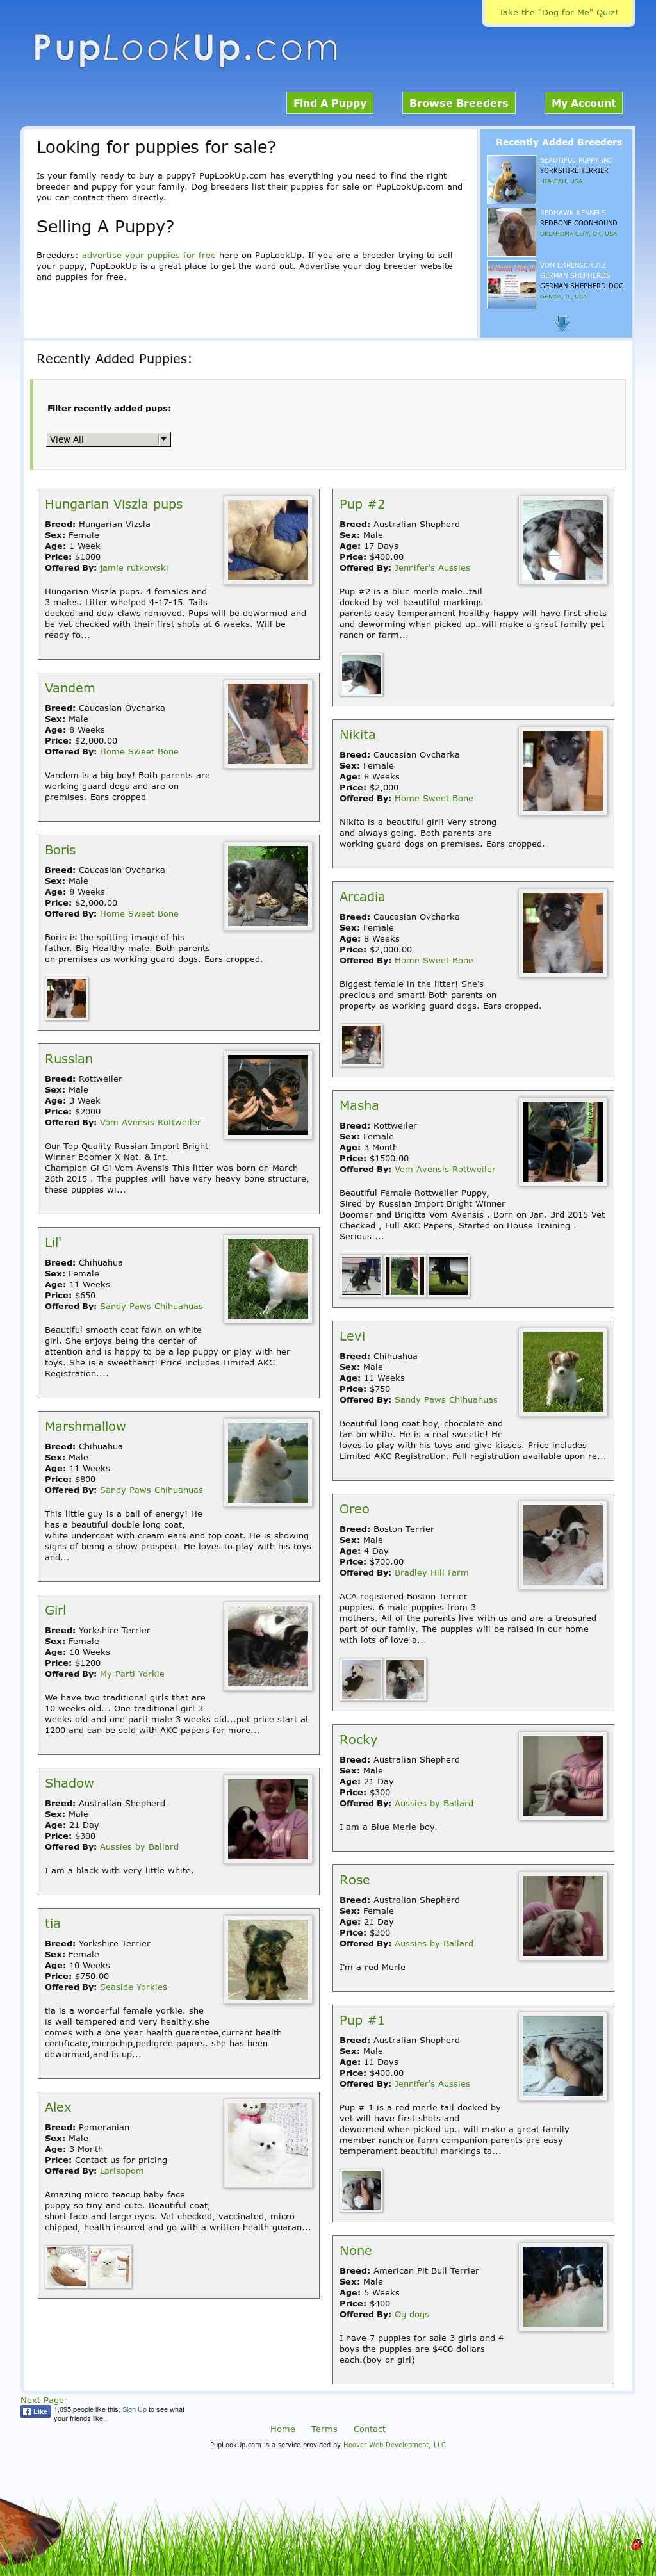 Dog Breeders - Puplookup Competitors, Revenue and Employees